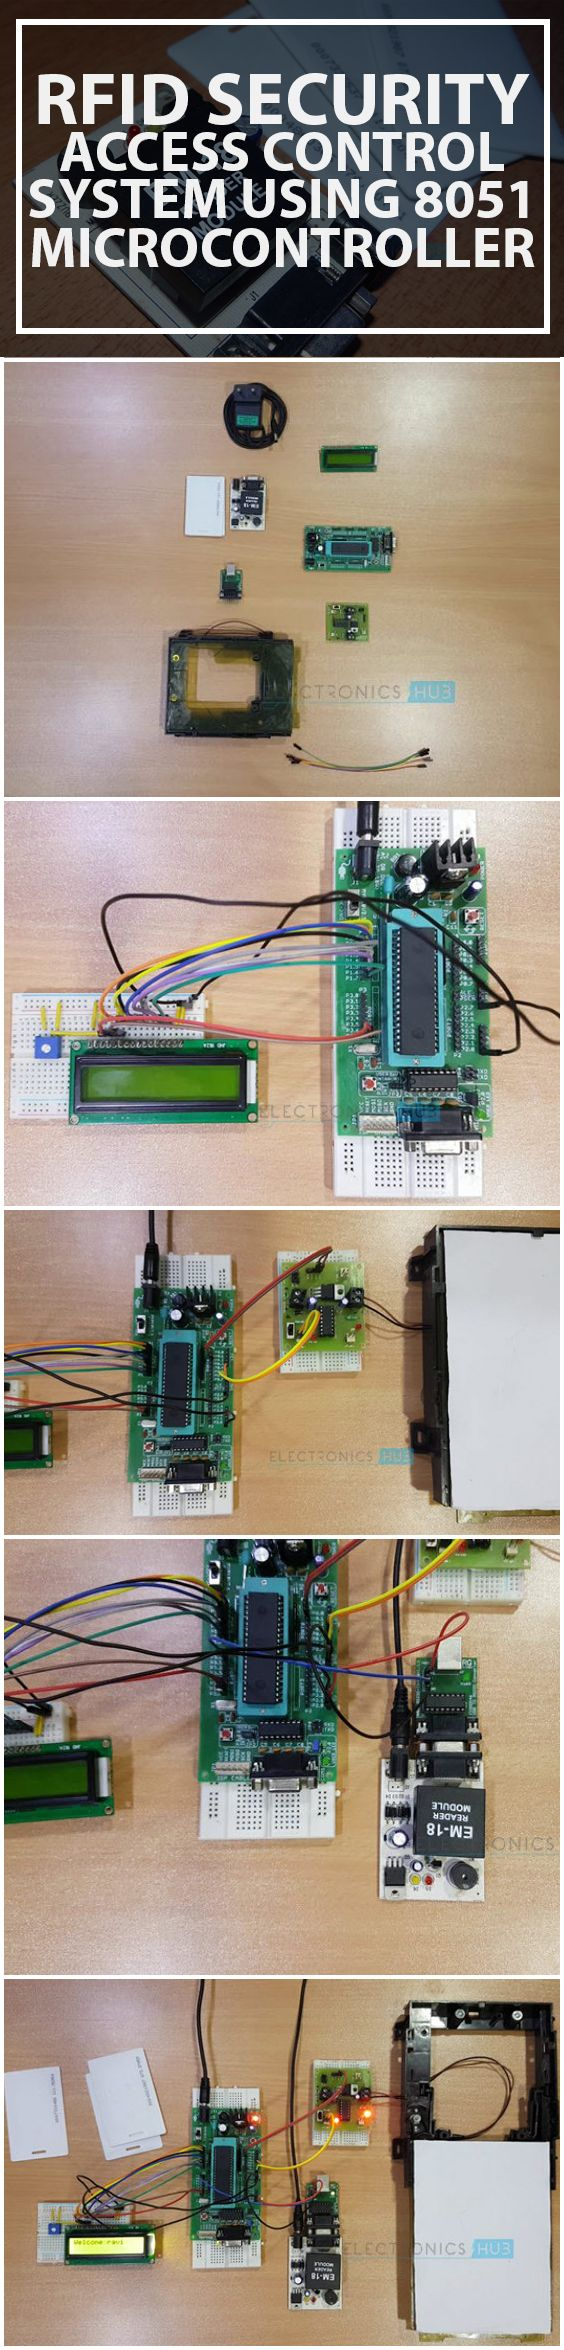 Rfid Security Access Control System Using 8051 Microcontroller Digital Tachometer And Systems